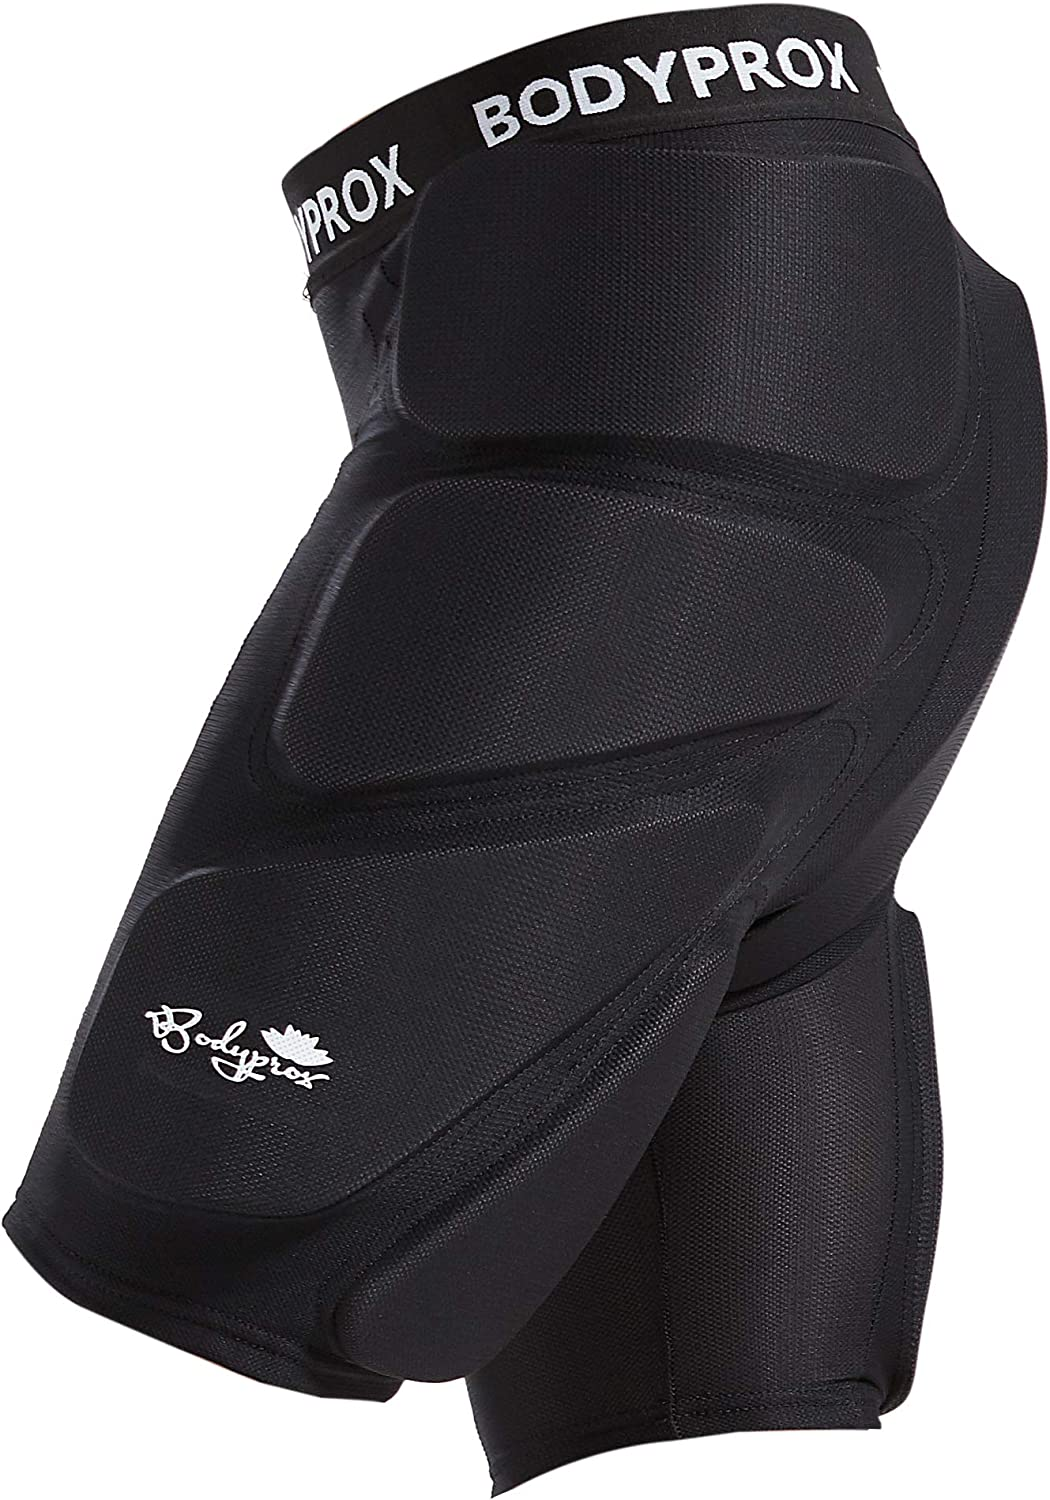 Bodyprox Protective Padded Shorts for Snowboard,Skate and Ski,3D Protection for Hip,Butt and Tailbone